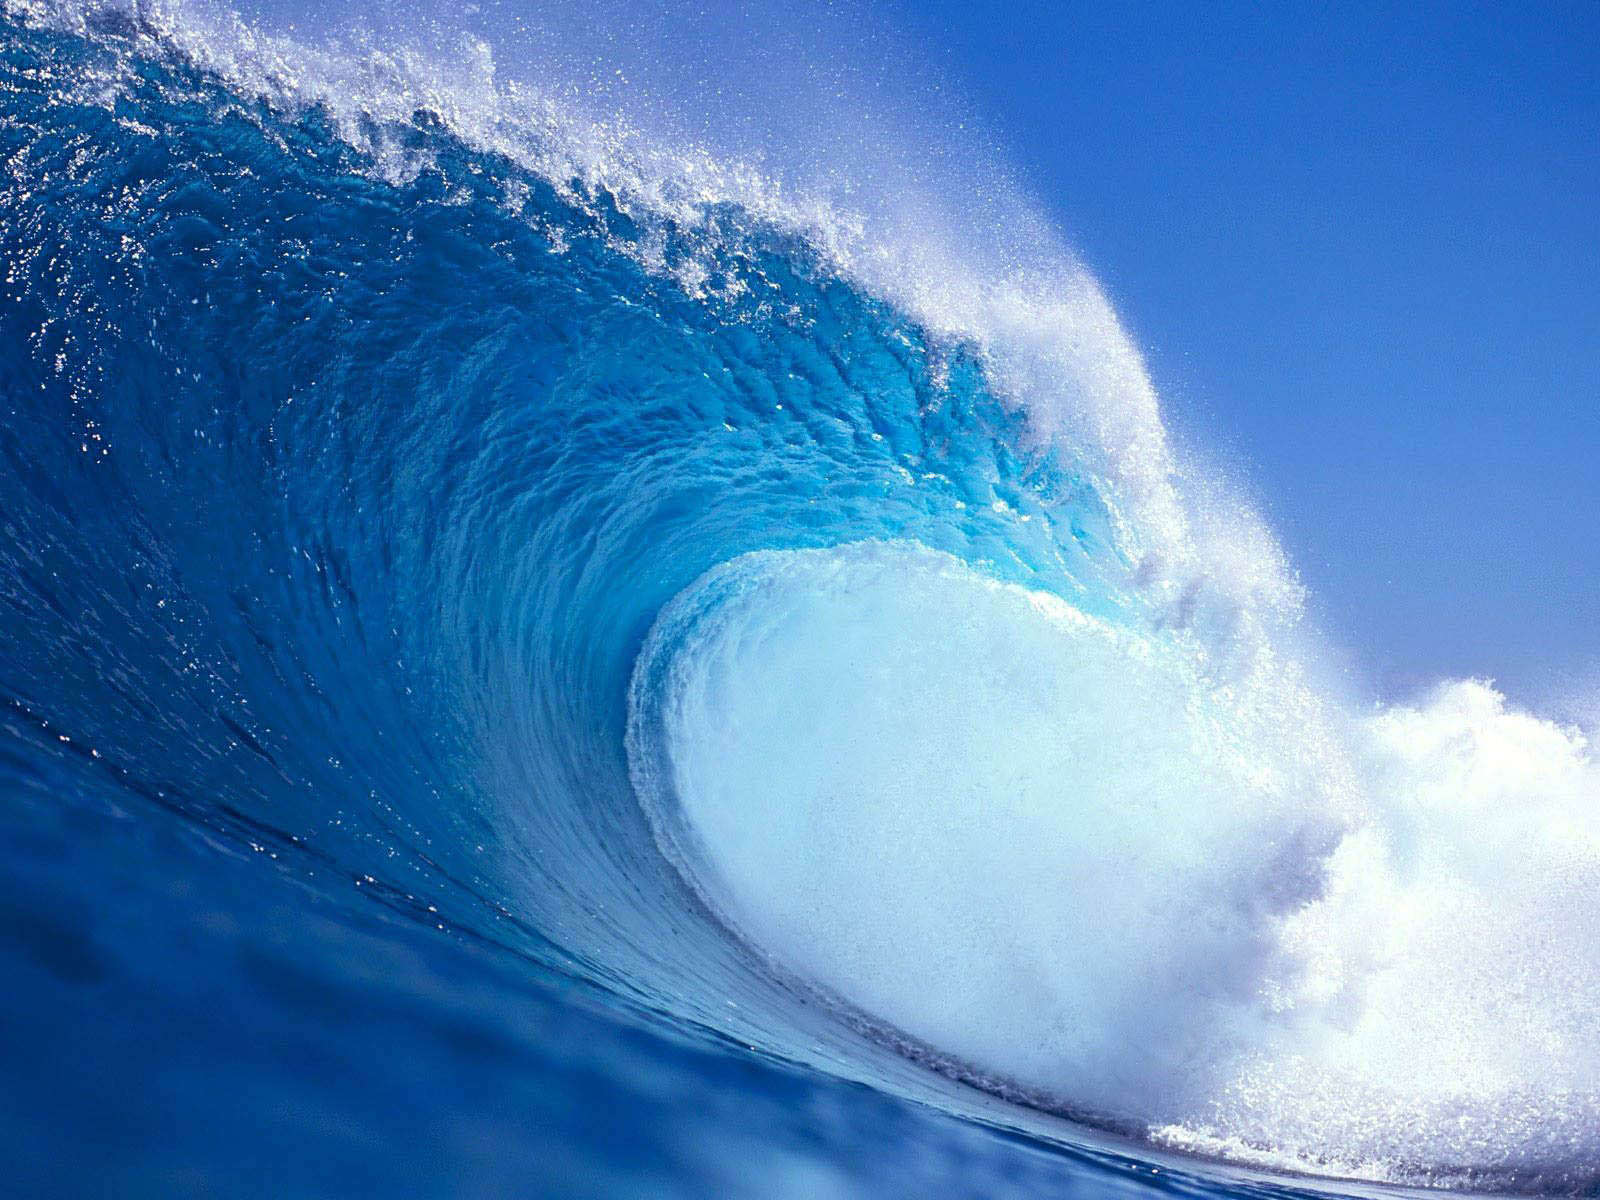 Hd Wallpaper High Resolution Big Wave Wallpapers